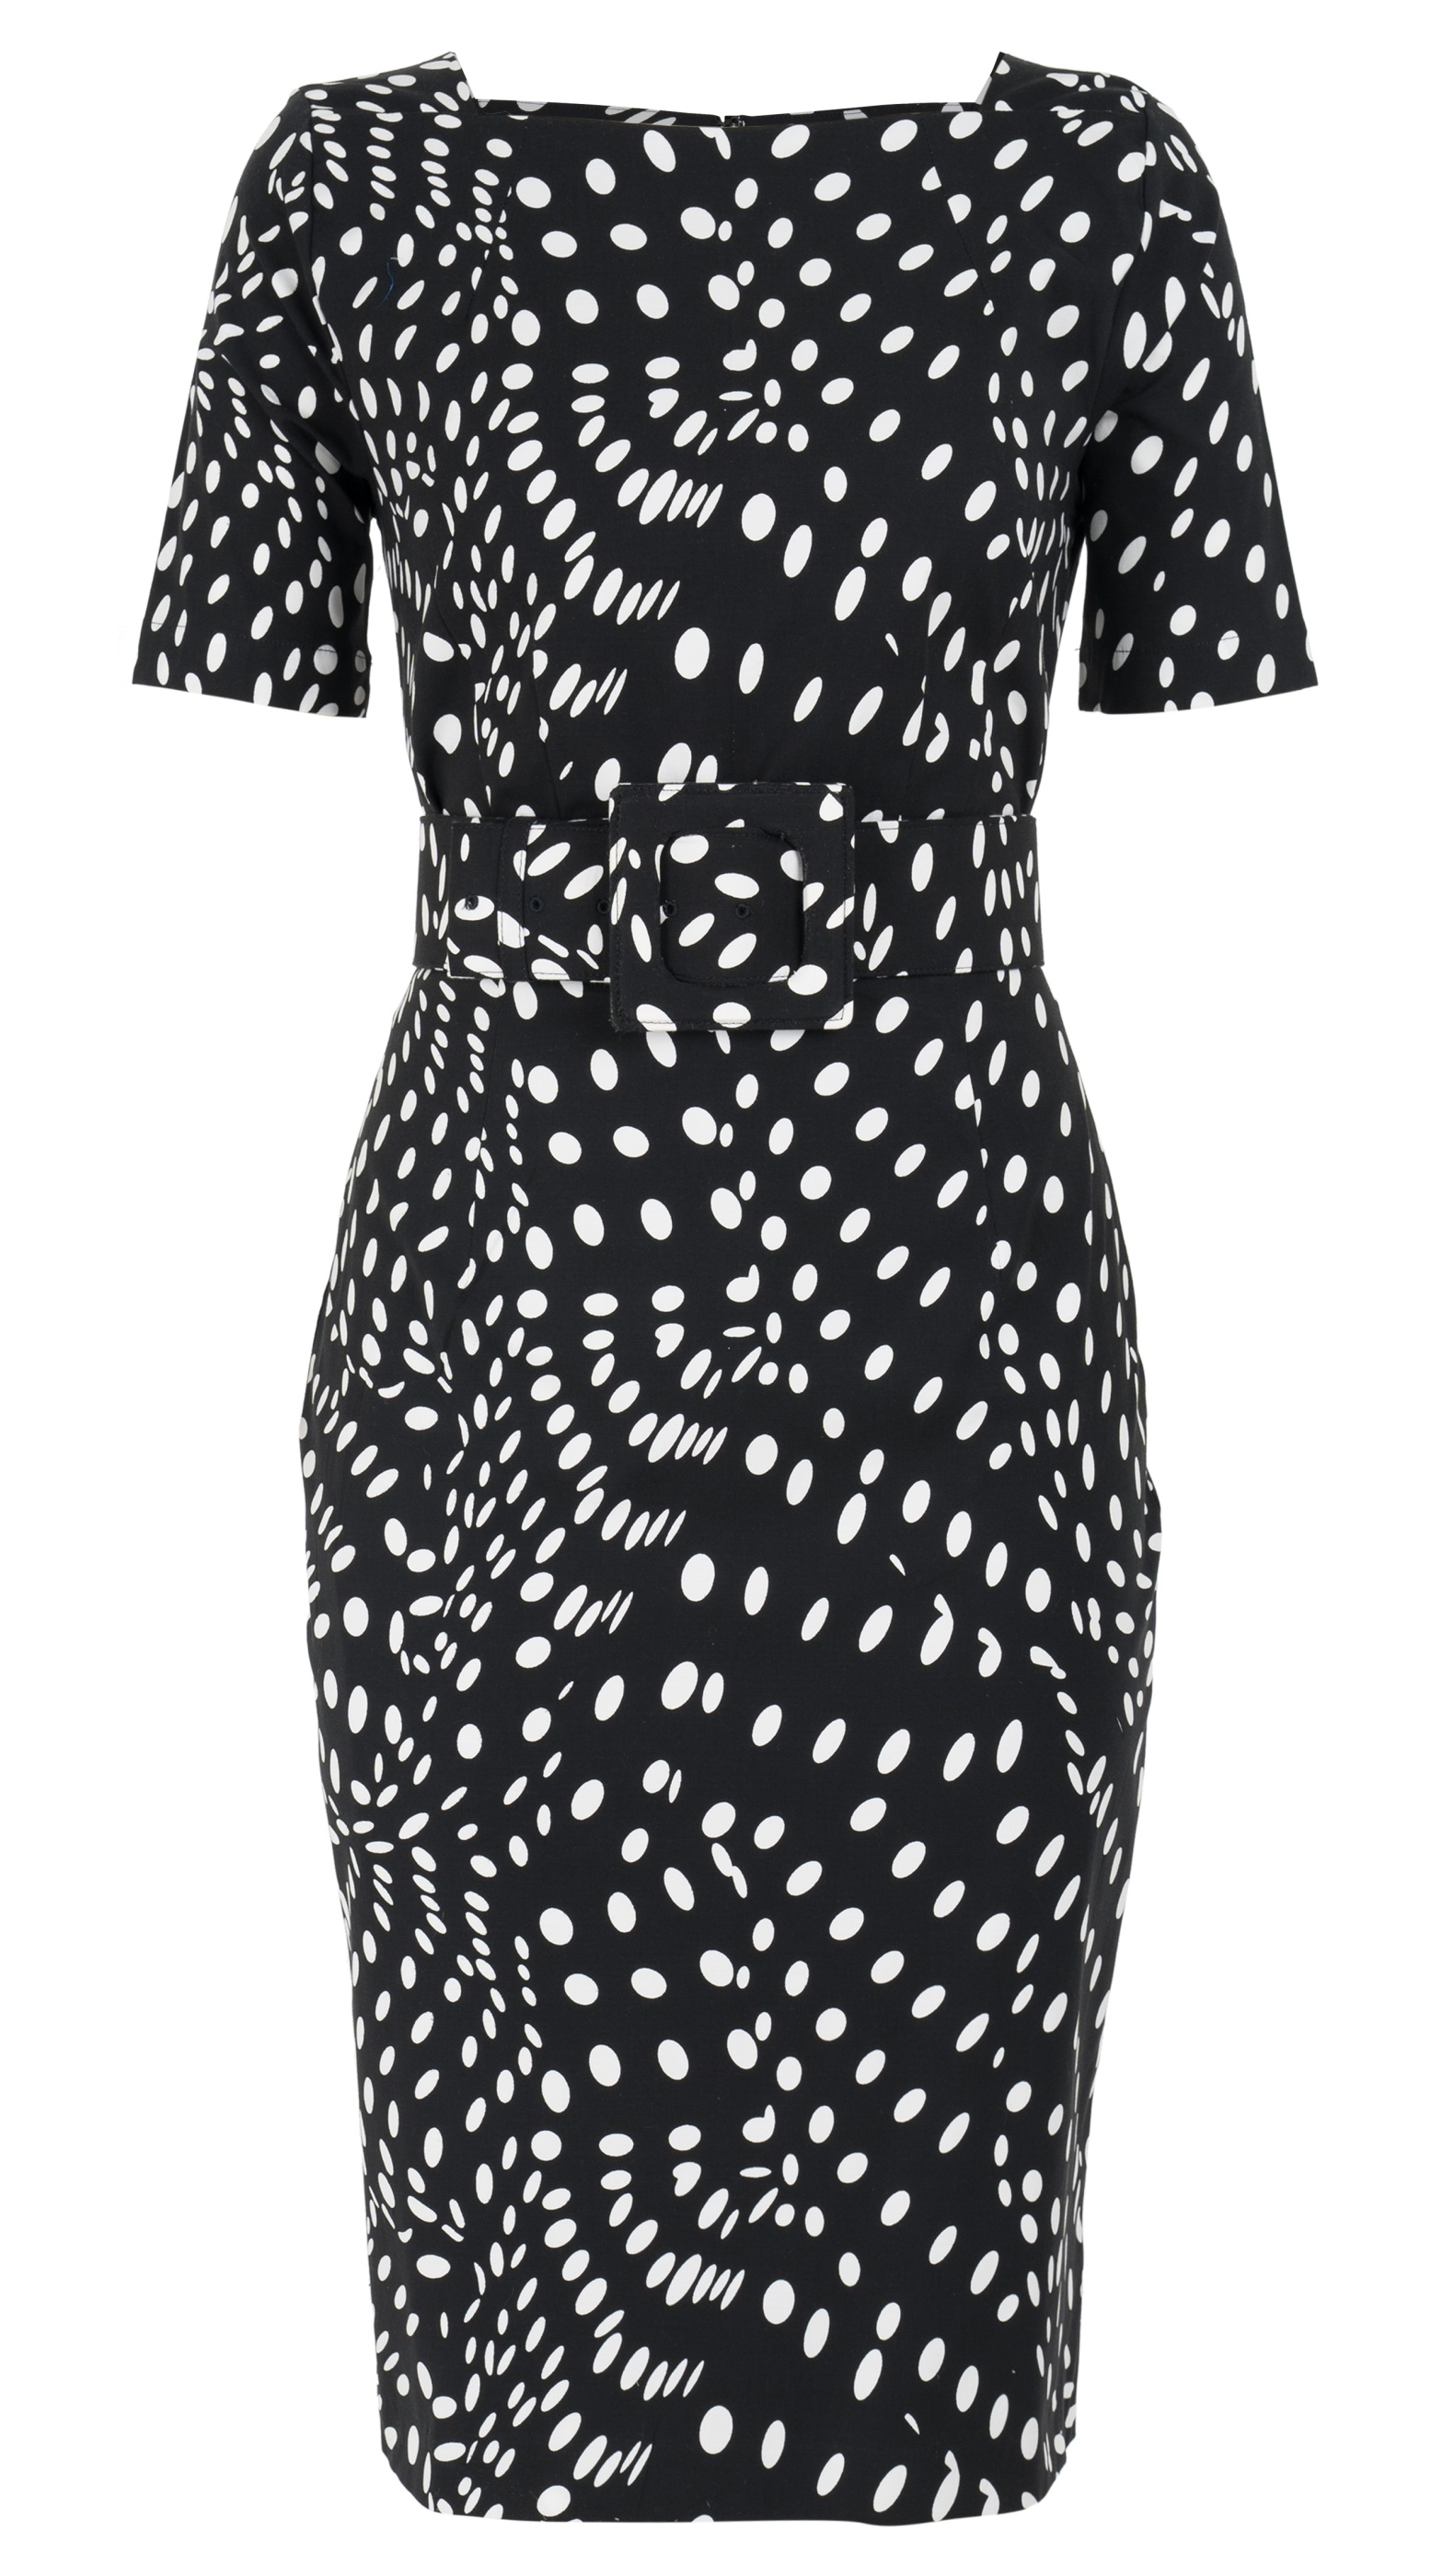 Drapery Dots_Black_Celine Dress Boat Neck 1-2 Sleeve w Hamilton Belt_C Dobby_Front-2